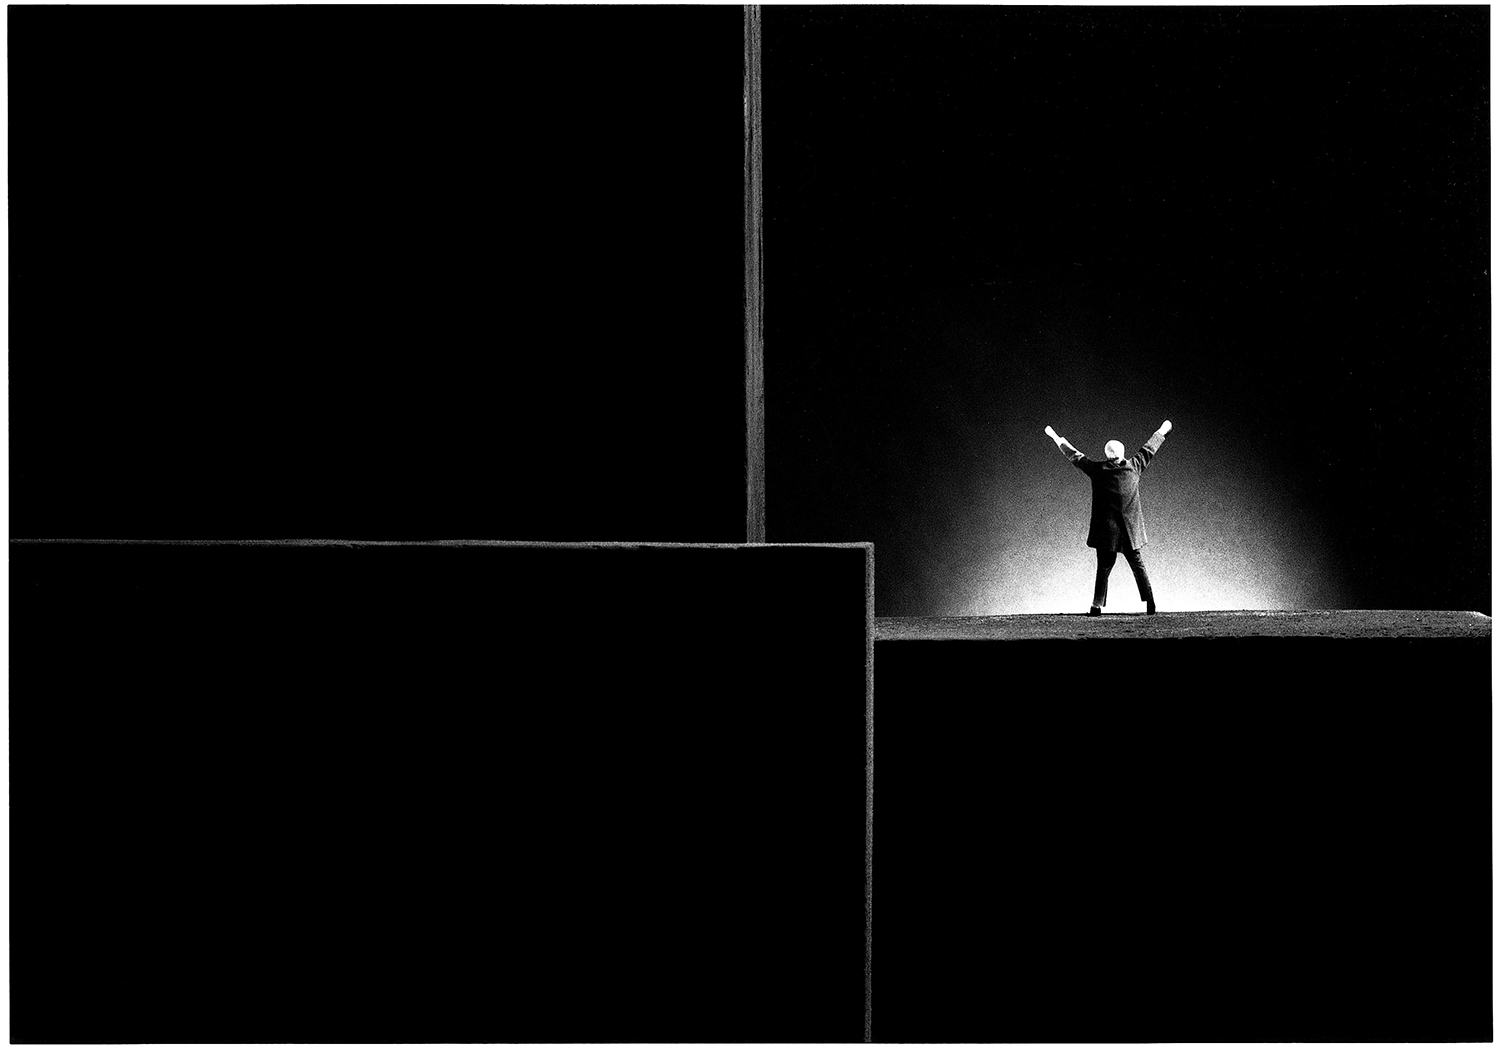 Gilbert Garcin 316 – La vie est belle – Life is beautiful, gelatin silver print, Available in three sizes: 8 x 12 inches, 12 x 16 inches, 20 x 24 inches unframed, Edition of 12